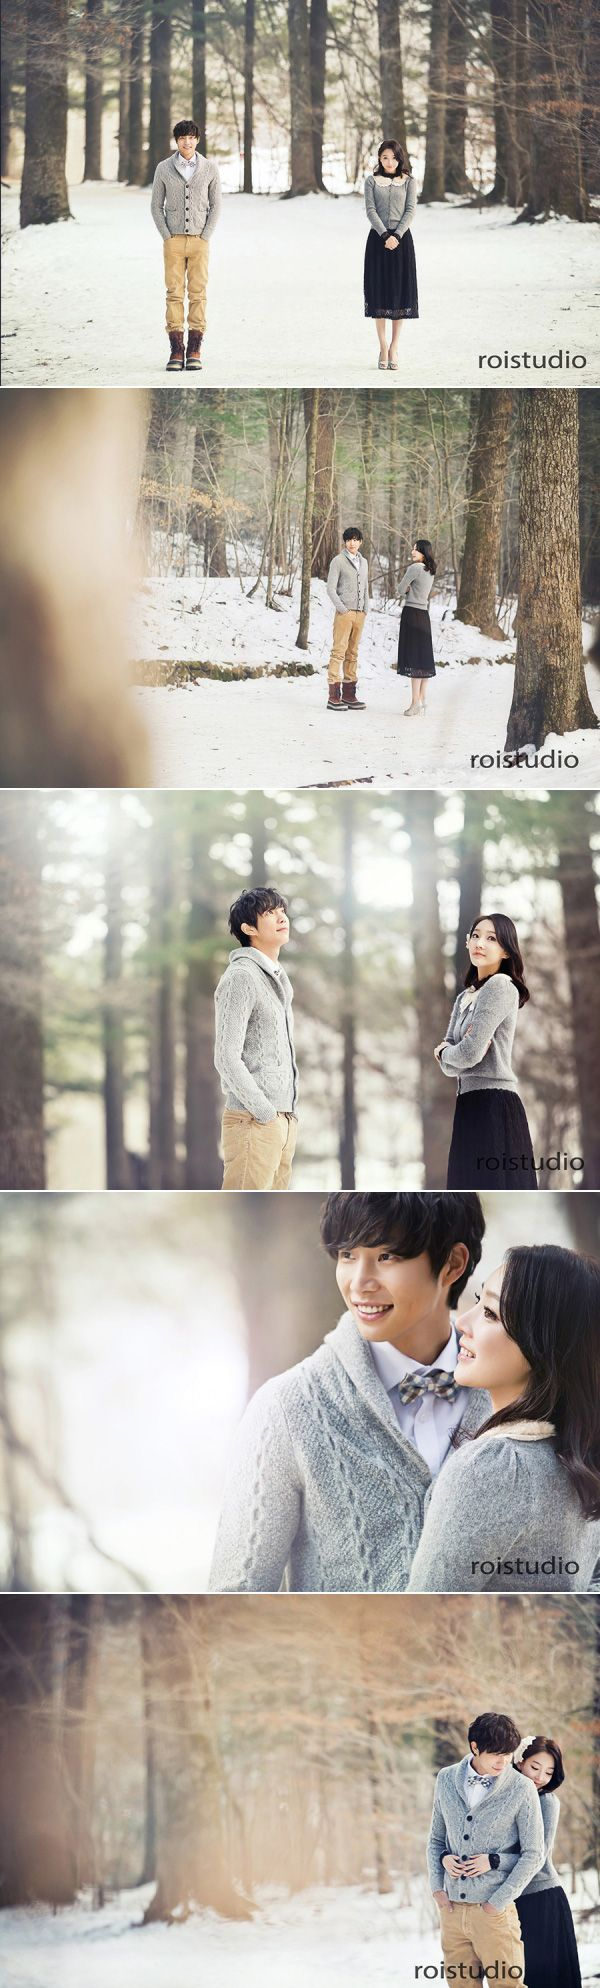 Forest winter Korean wedding photography by Roi Studio at Gangwon-do on OneThreeOneFour.com